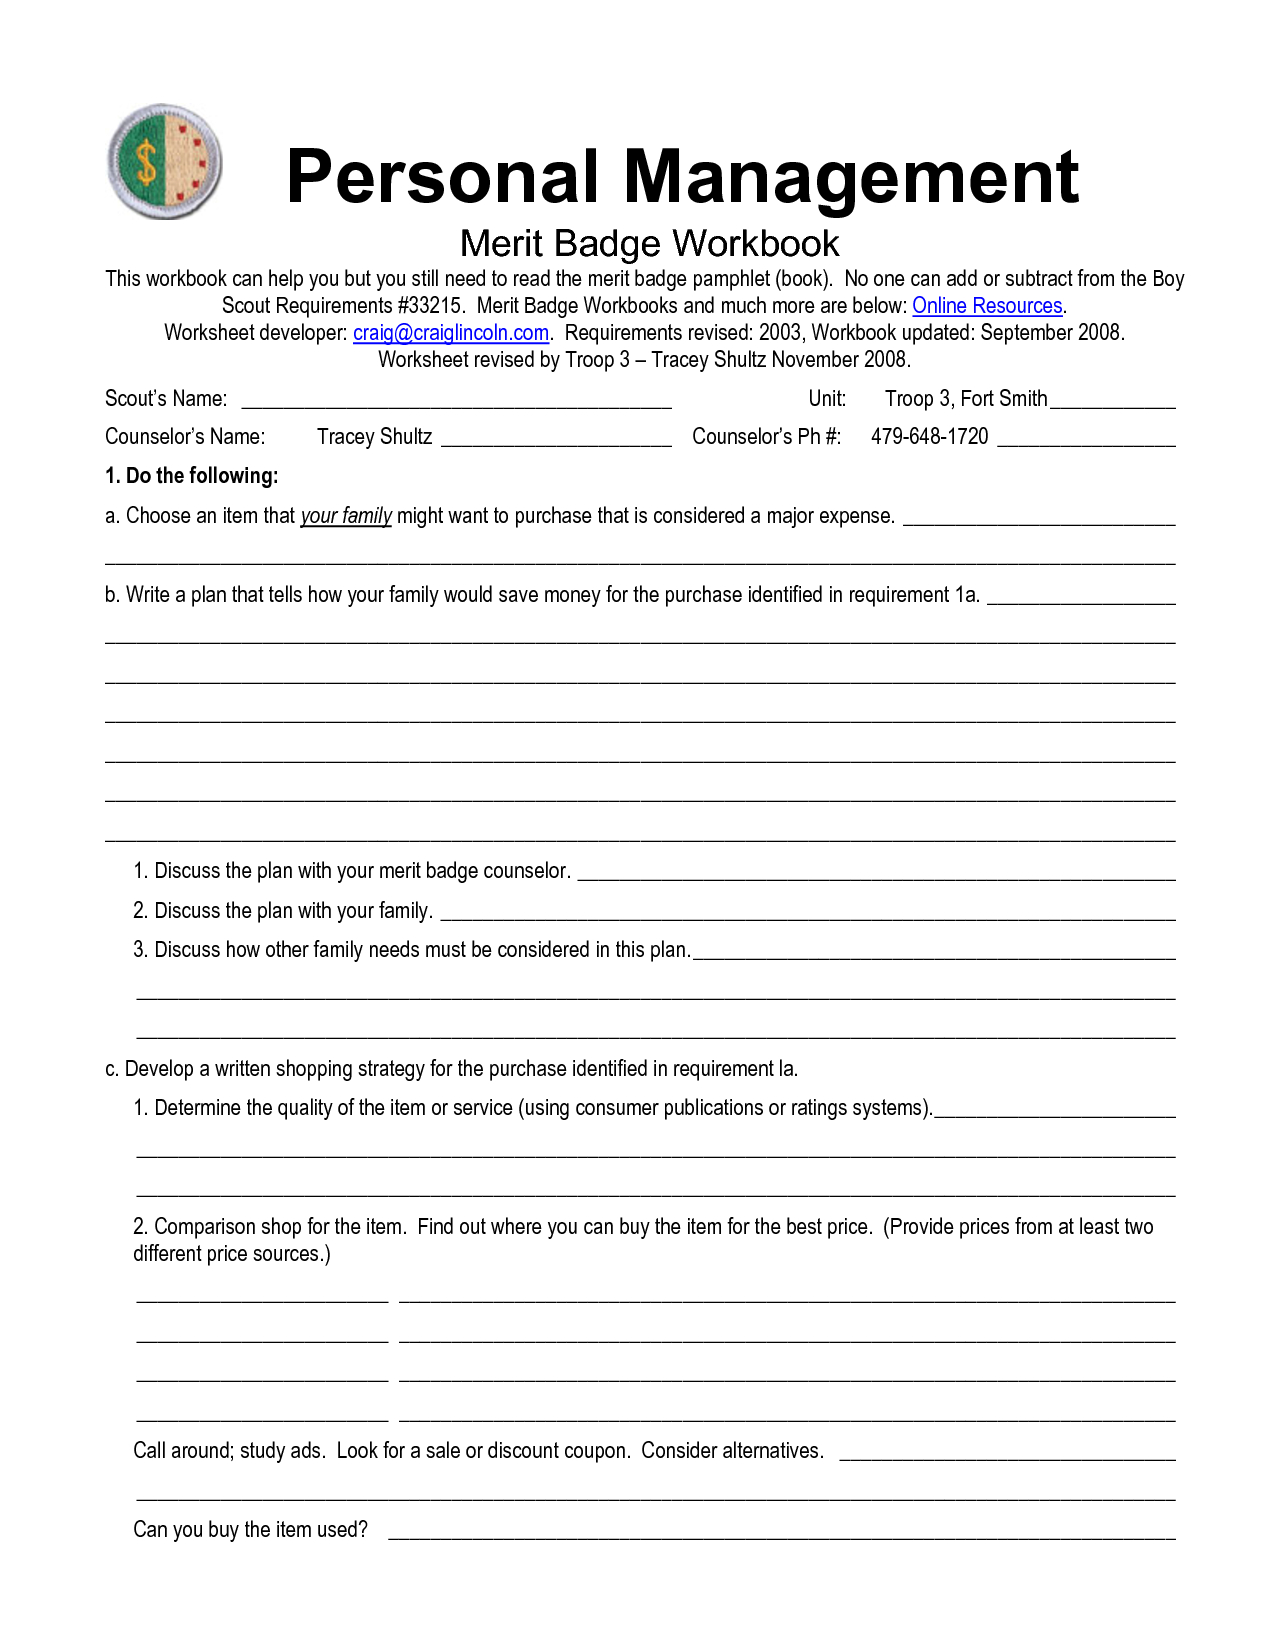 100 Sustainability Merit Badge Worksheet Cooking Cooked